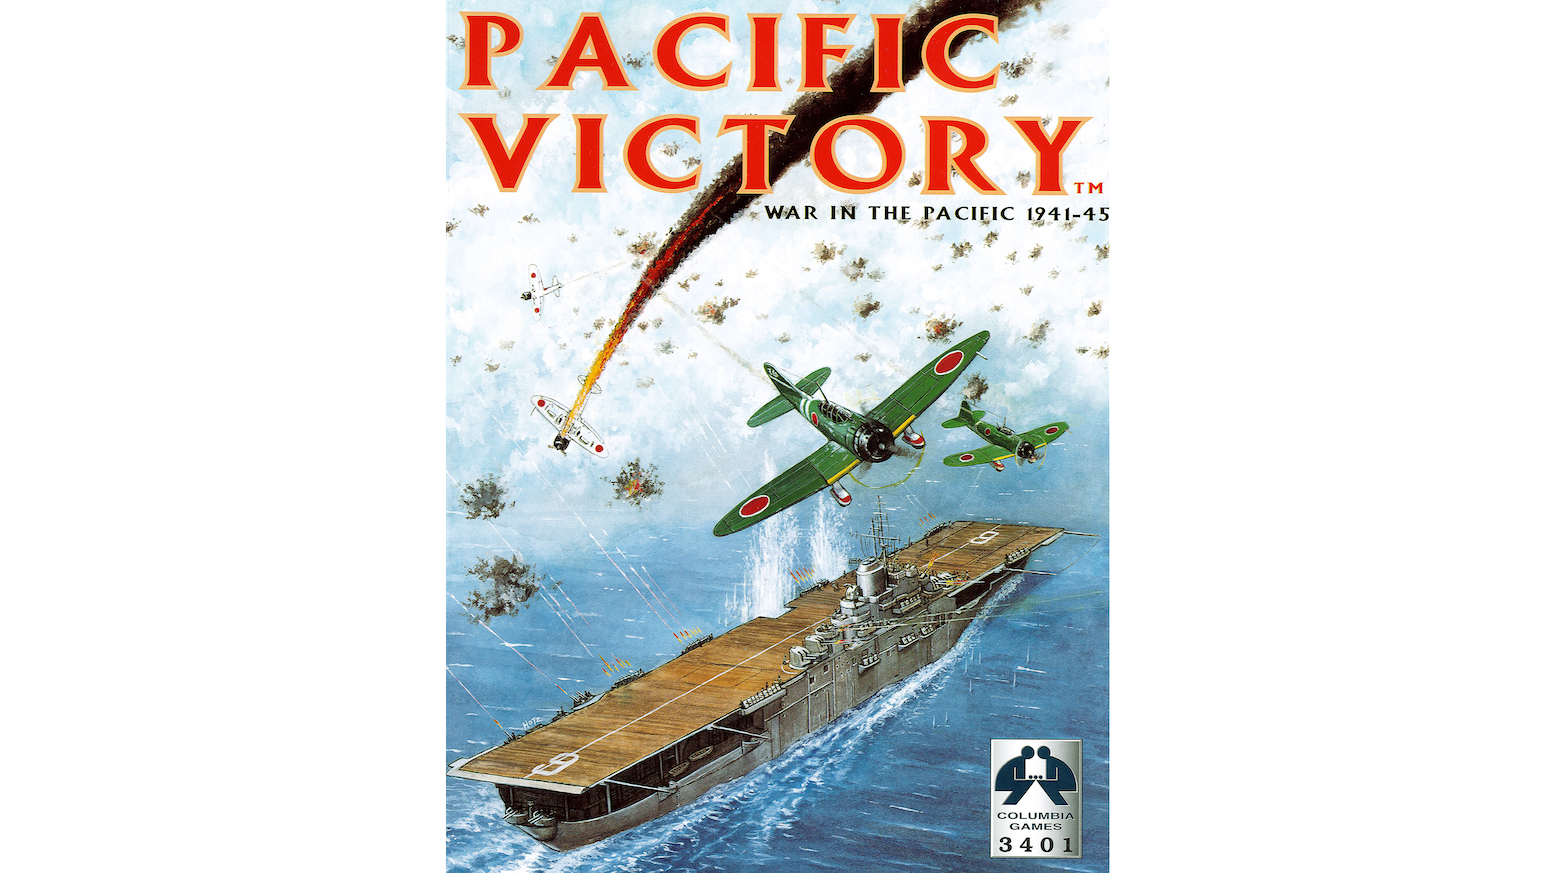 Pacific Victory is an exciting, fast-paced game simulating the Pacific Theater of WWII.   Help bring this great game back into print.